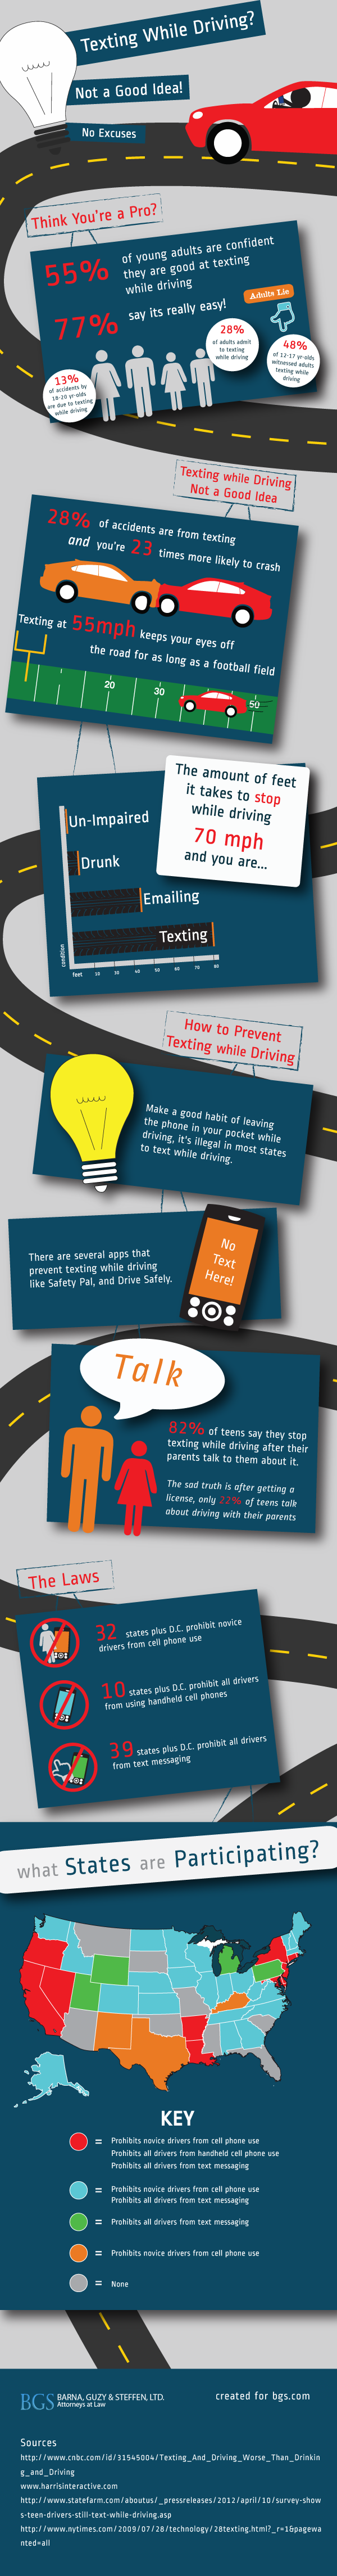 texting-while-driving-infographic